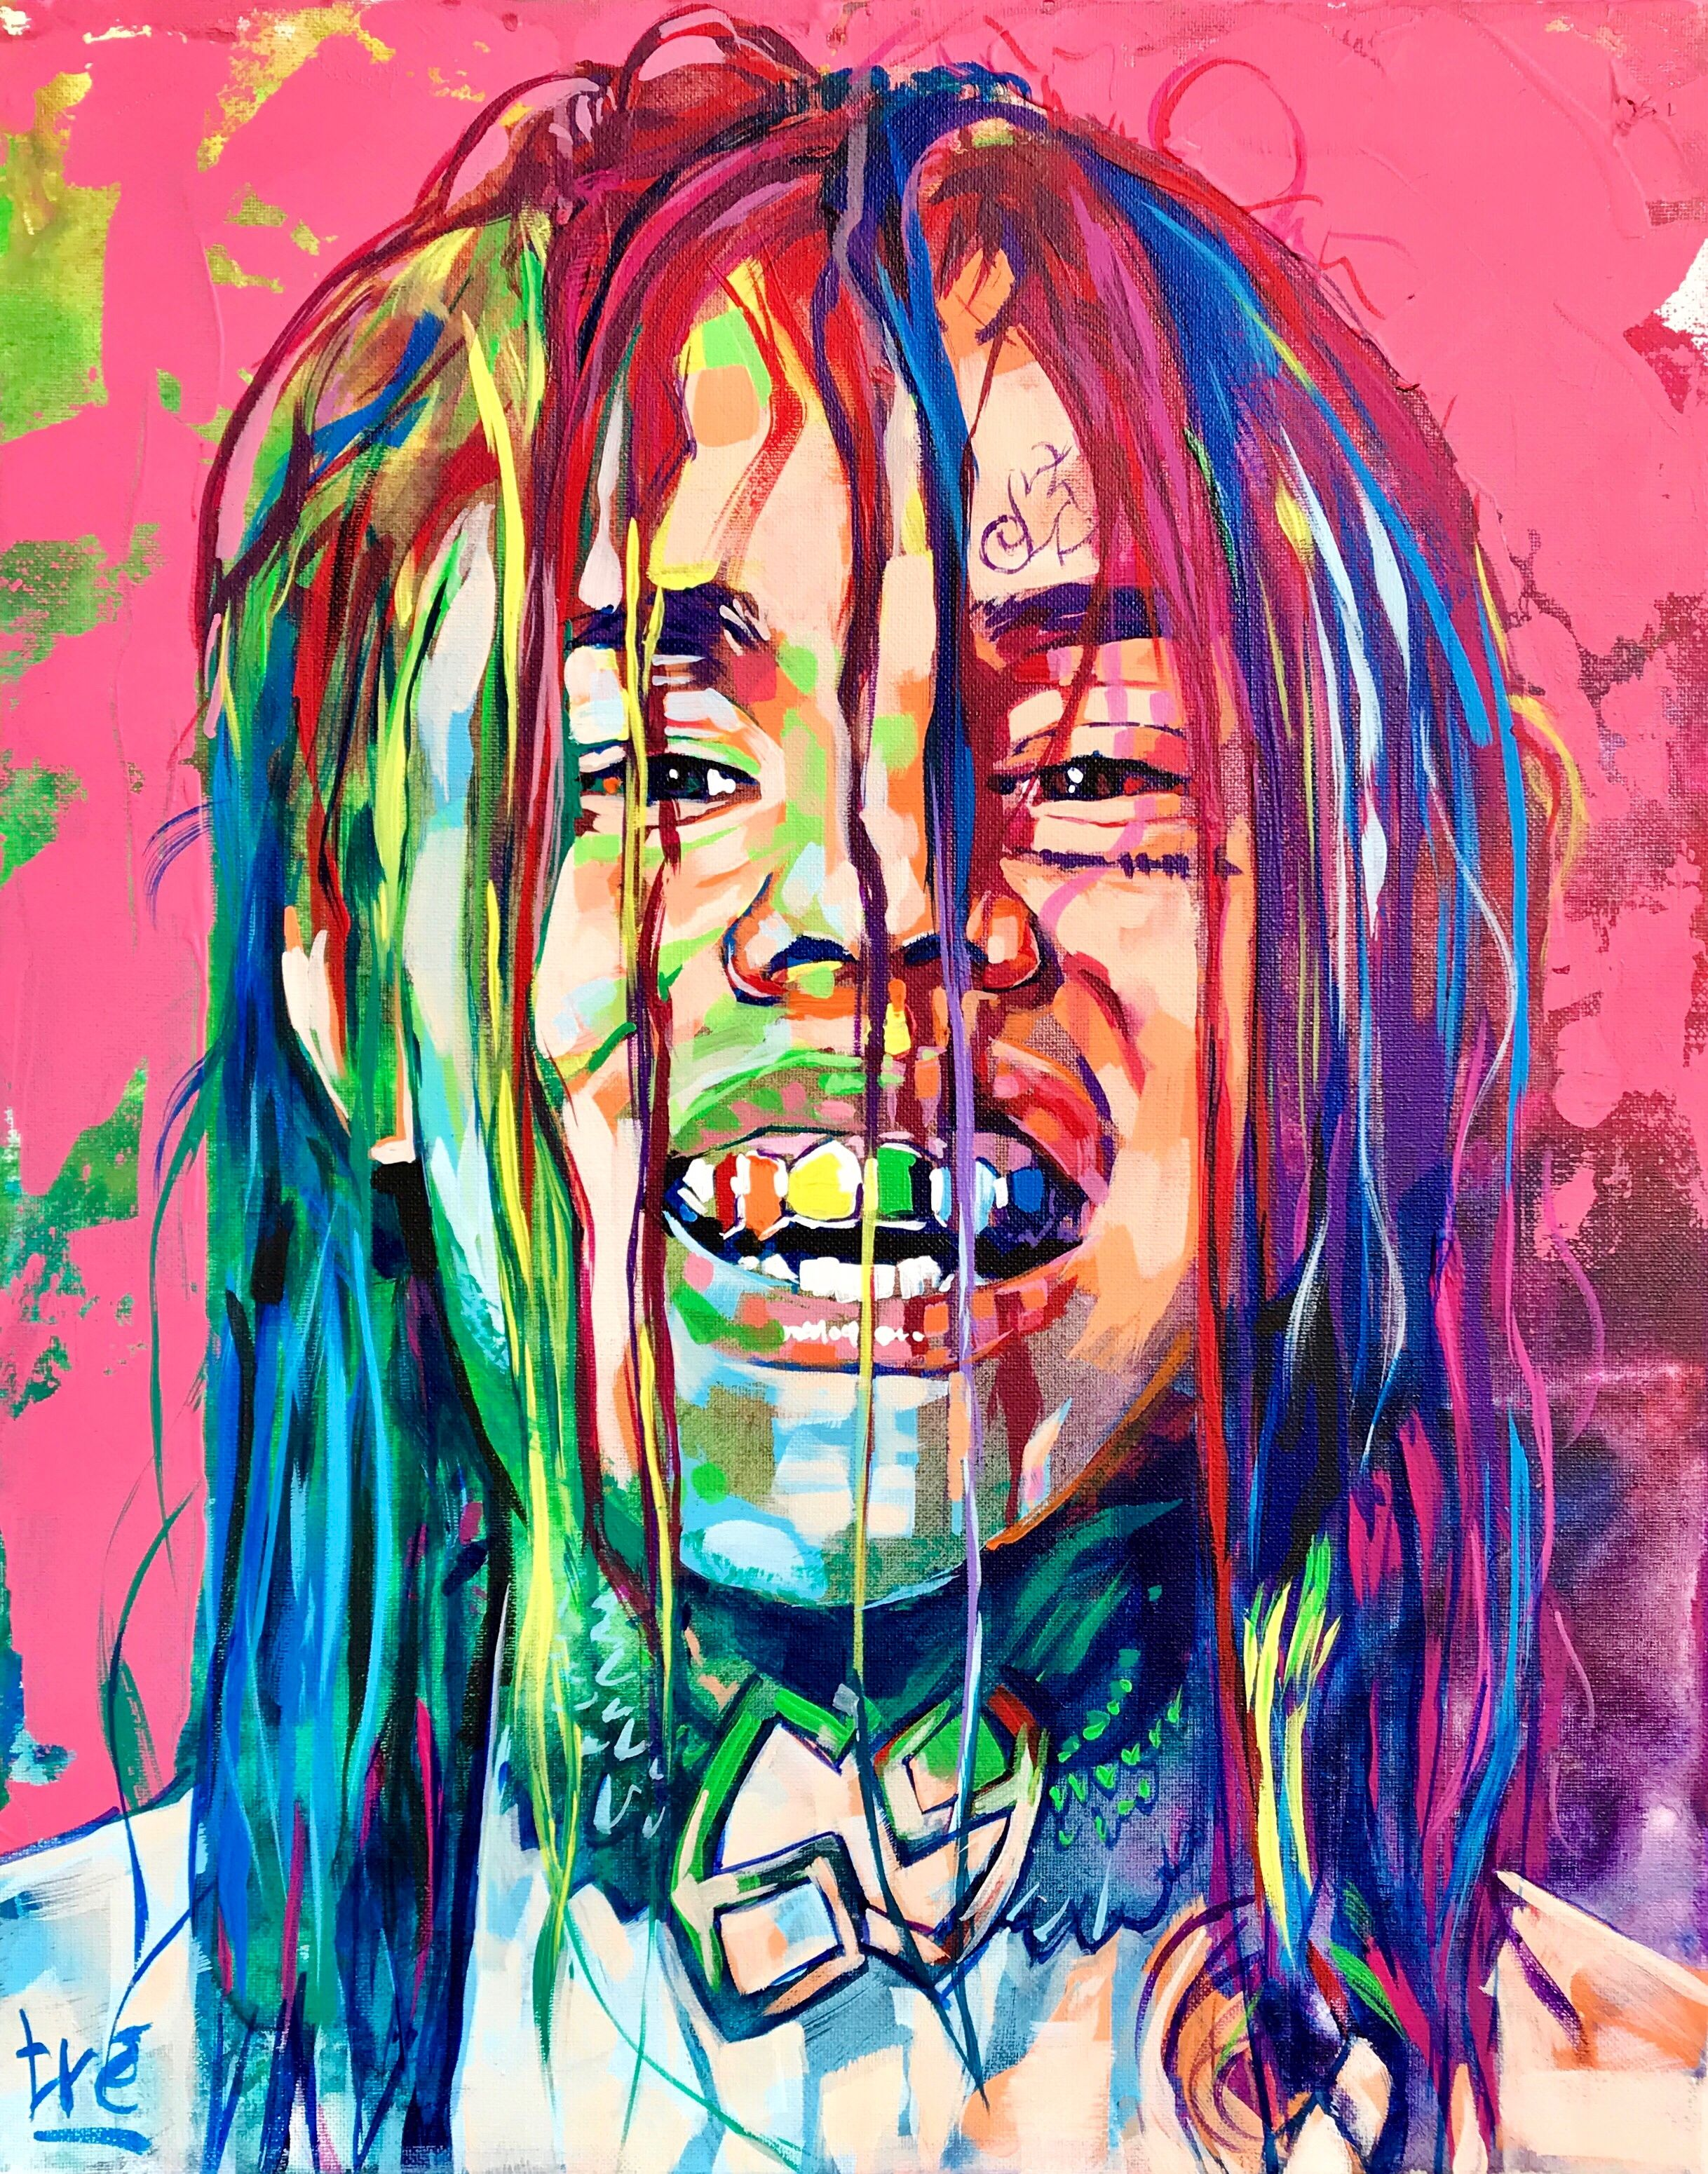 69 Cartoon Wallpaper : cartoon, wallpaper, Cartoon, 6Ix9ine, Wallpapers, Backgrounds, WallpaperAccess